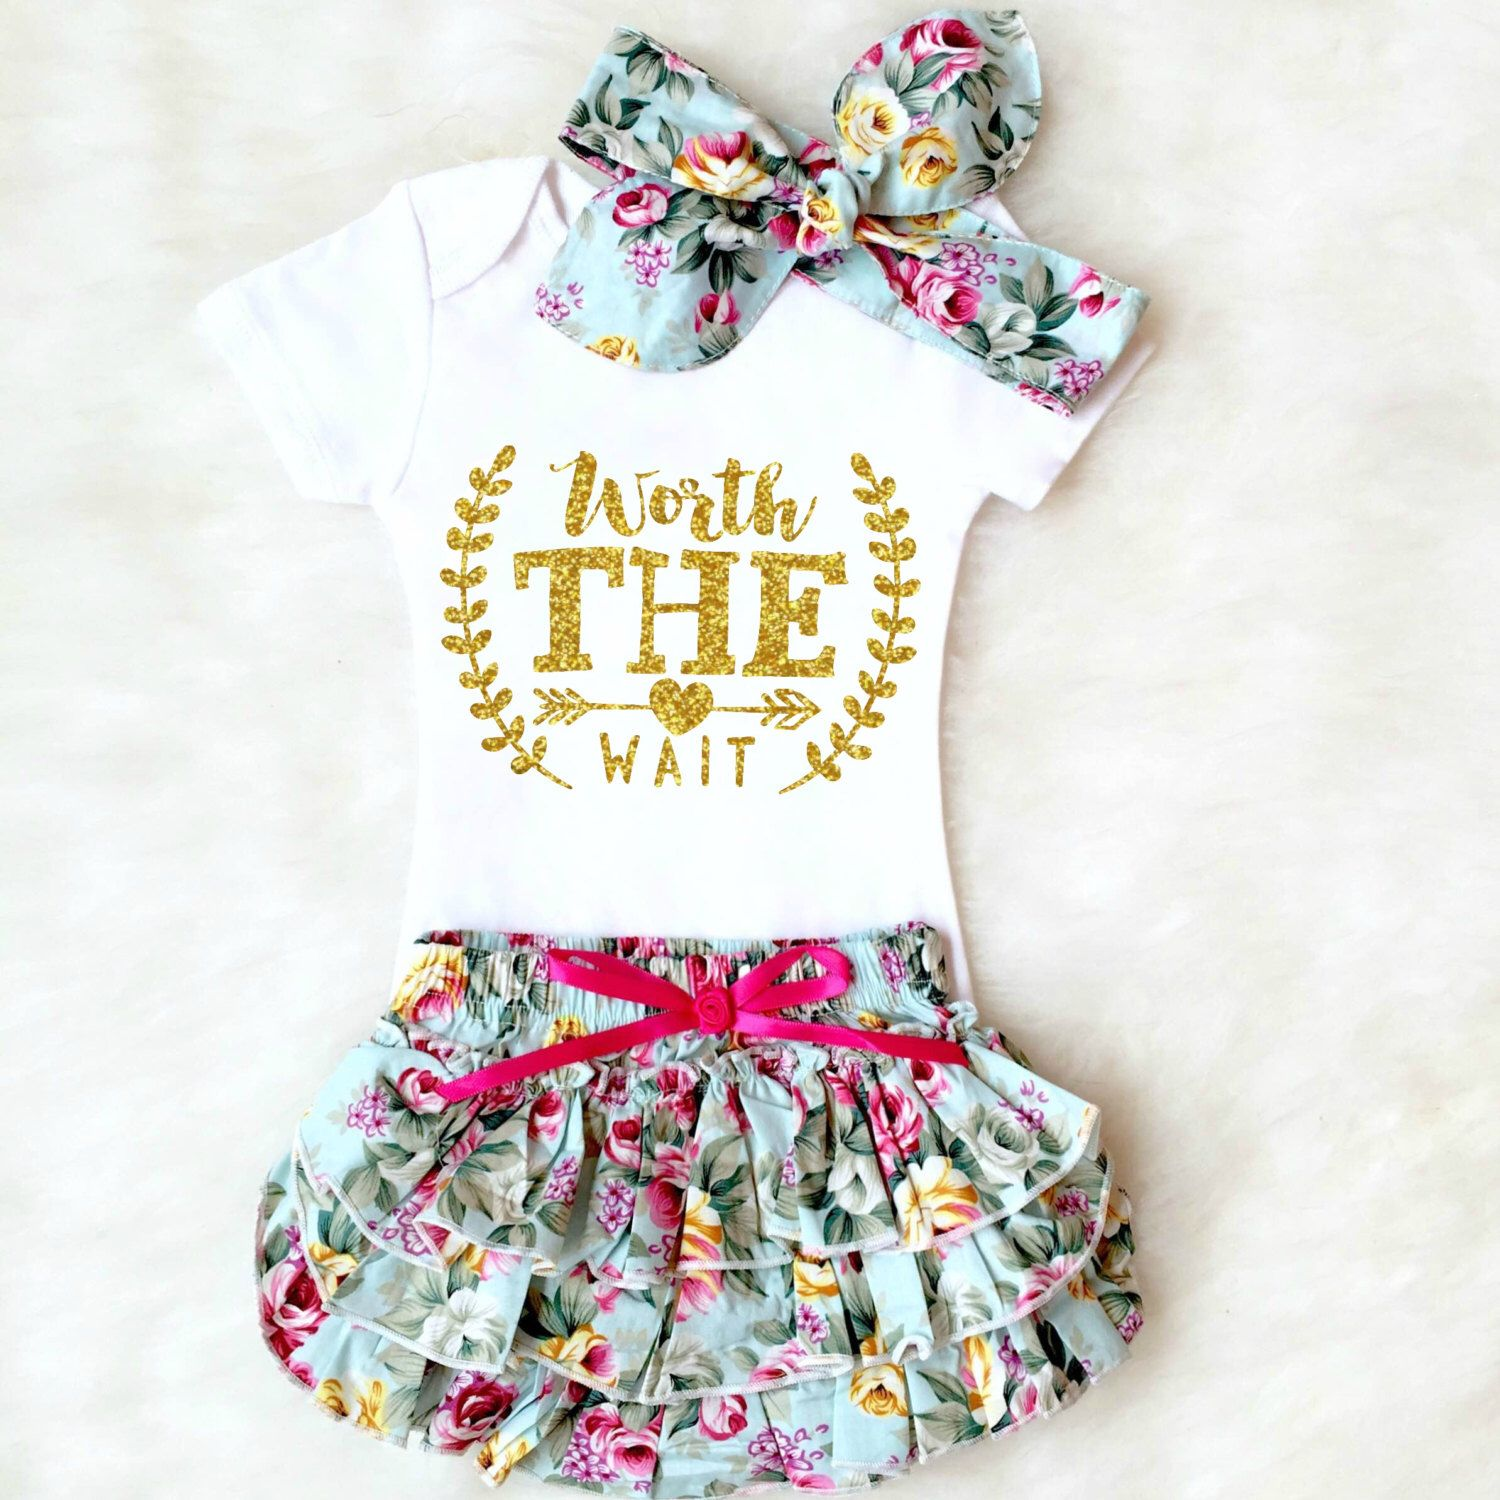 Baby Shower Gift Worth the Wait Outfit Baby Girl ing Home Outfit